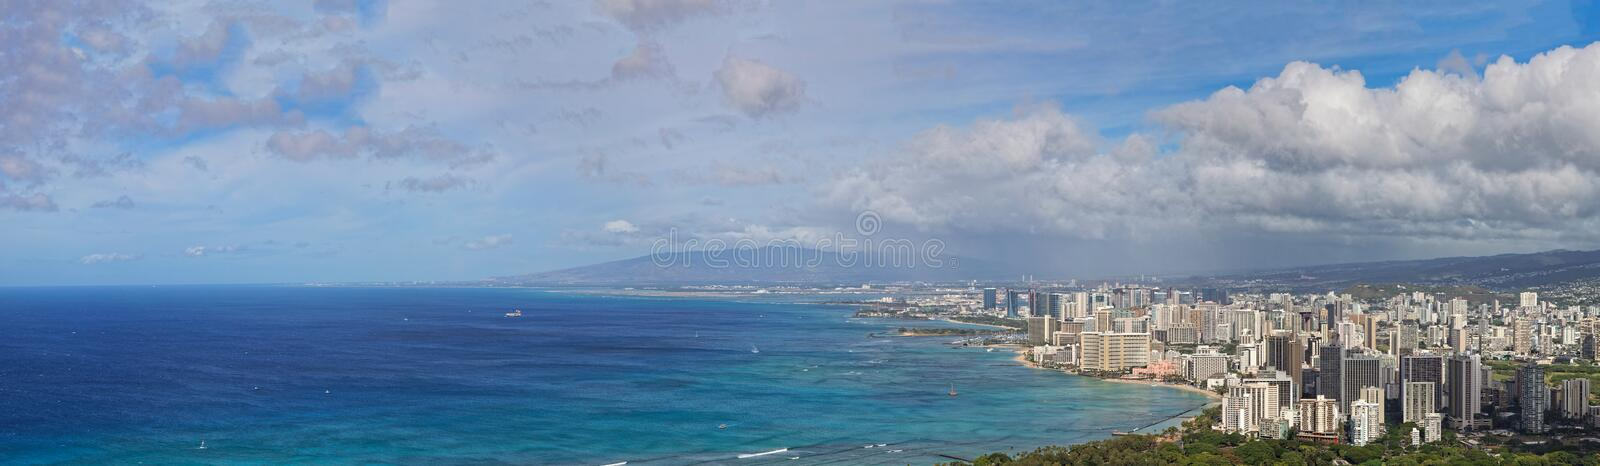 Panoramamic view of downtown Honolulu and Waikiki, Oahu, Hawaii royalty free stock photos